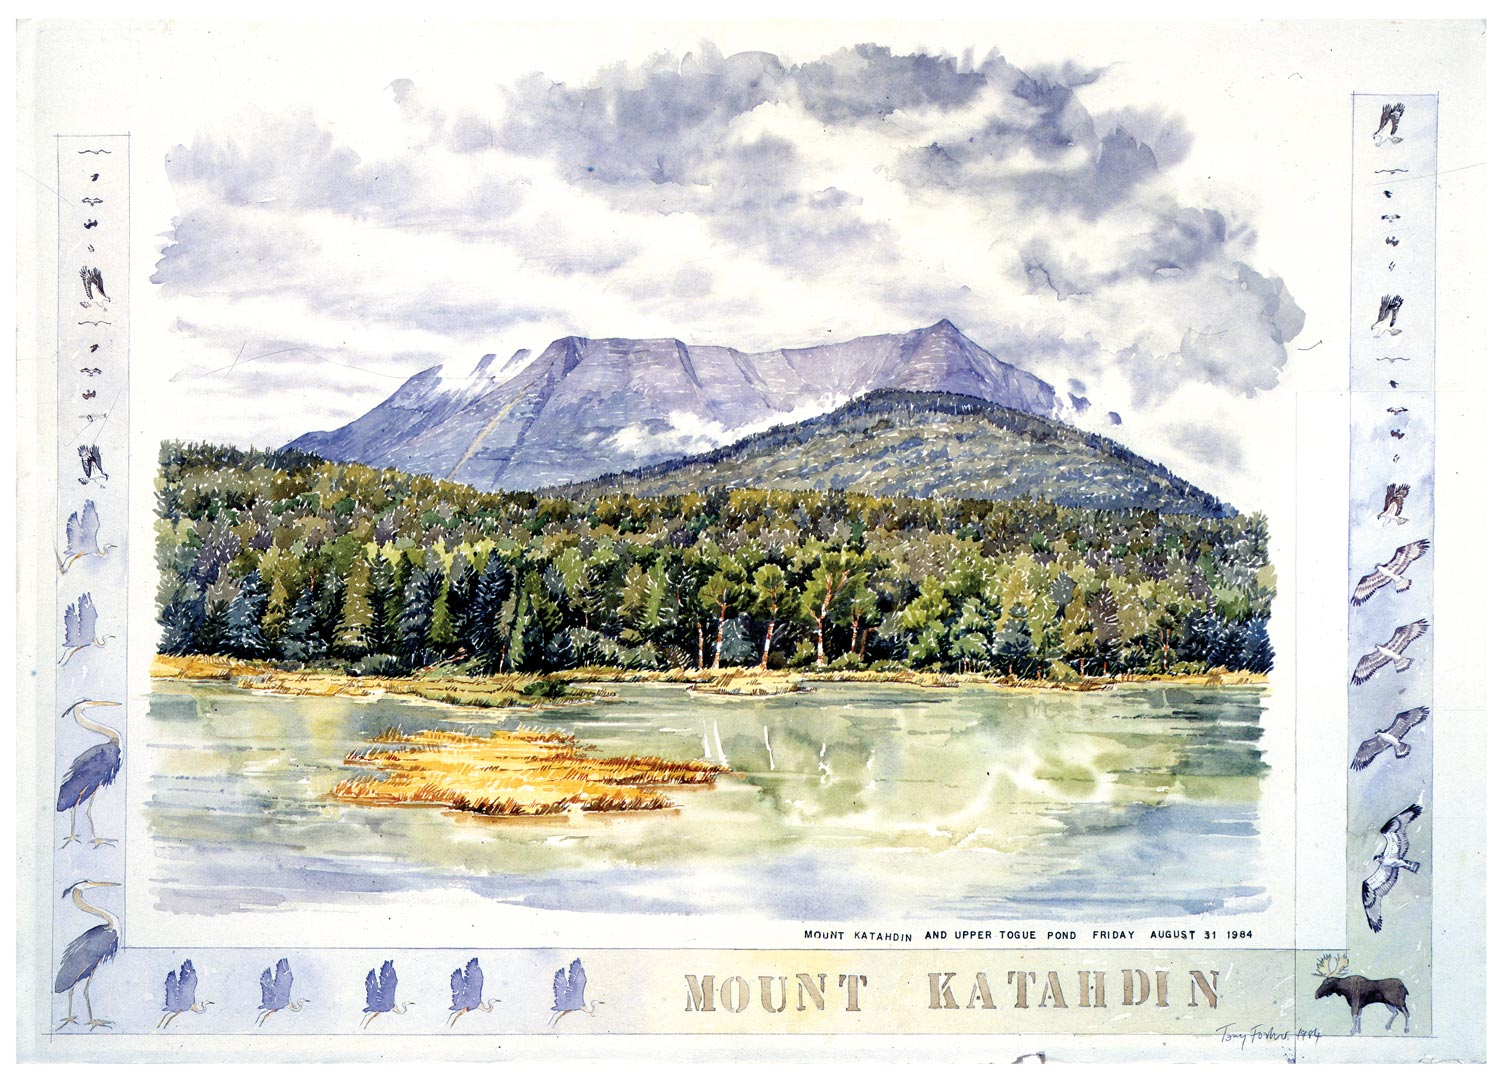 Tony Foster, Mount Katahdin,  1984 | Watercolor and graphite on paper, mixed media | 21 x 31 1/2 in. | 1984.2.24.2